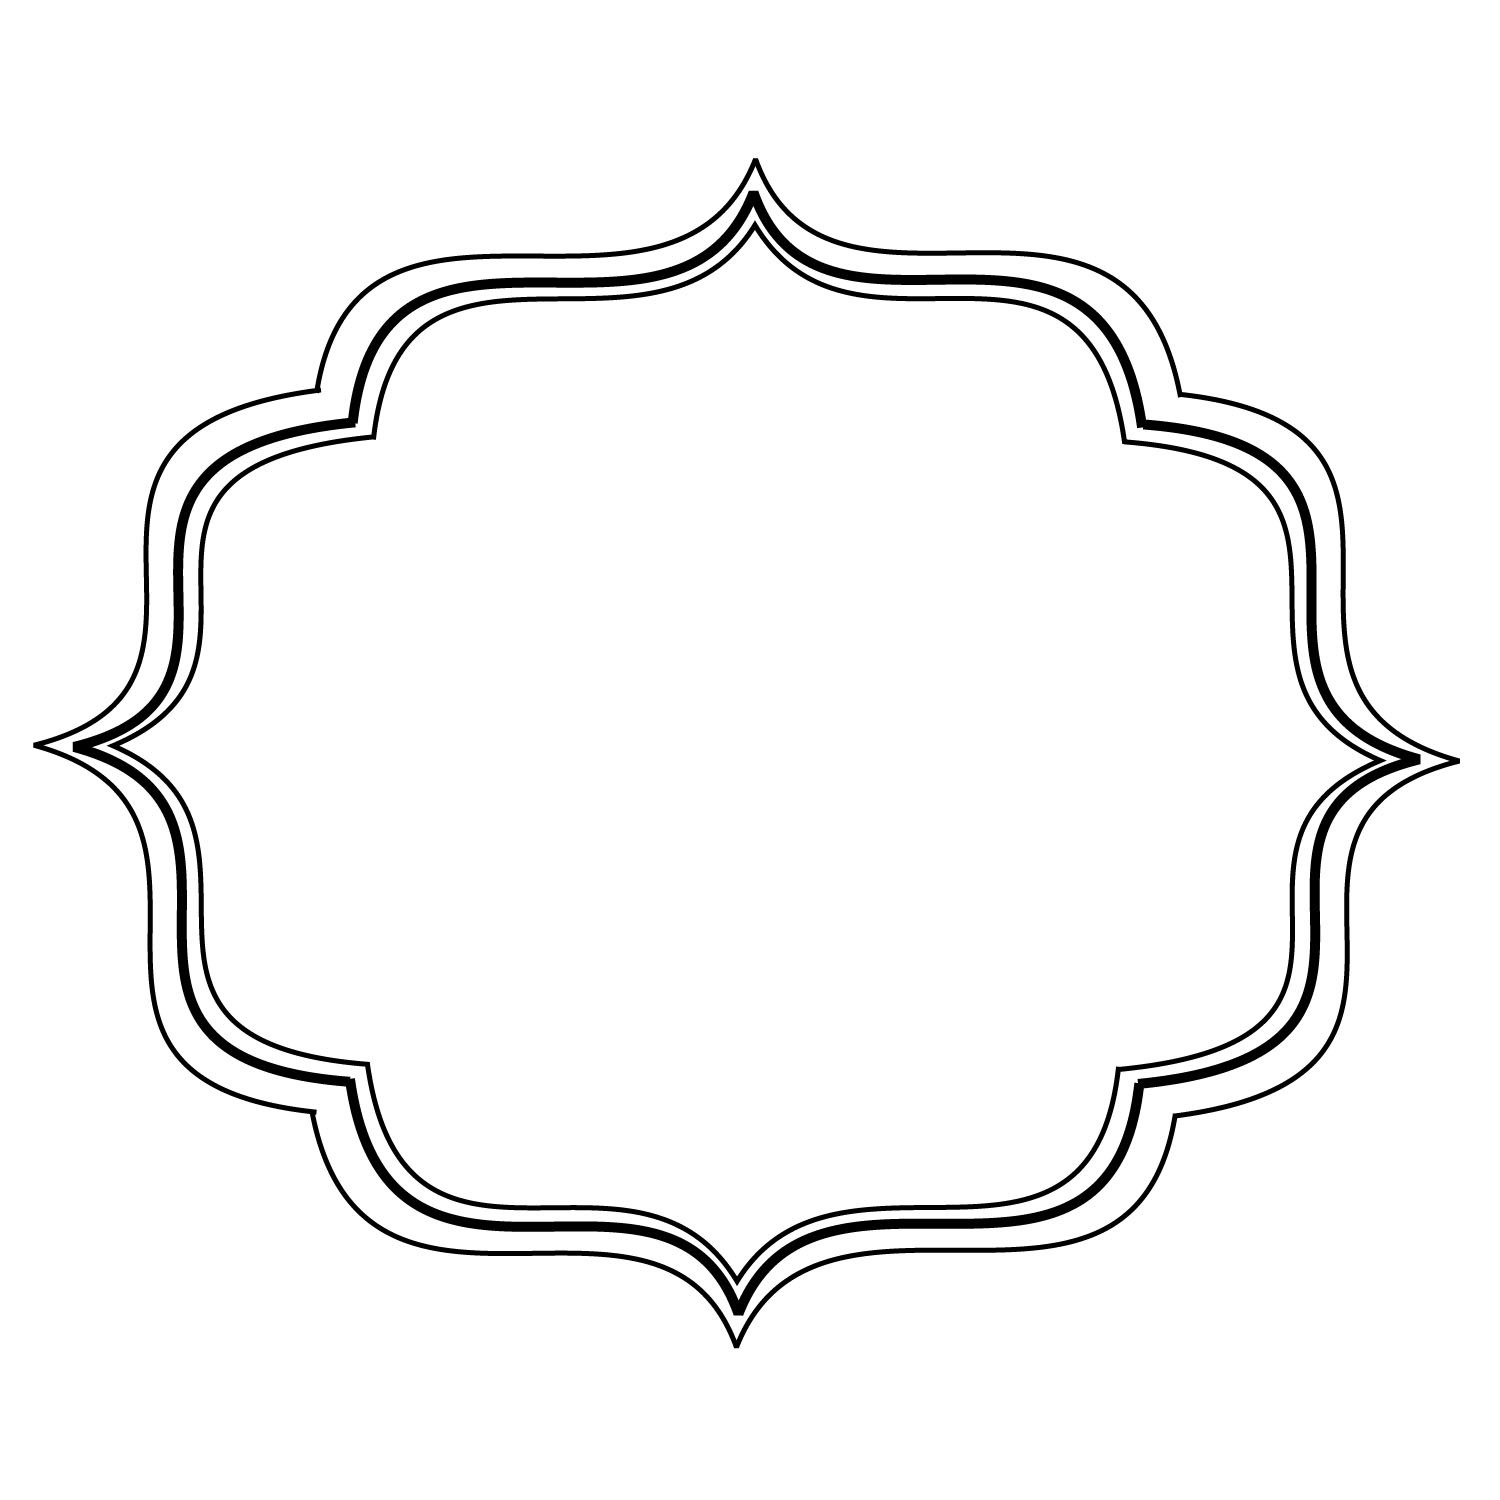 Flourish Frames Clipart Clipart Suggest